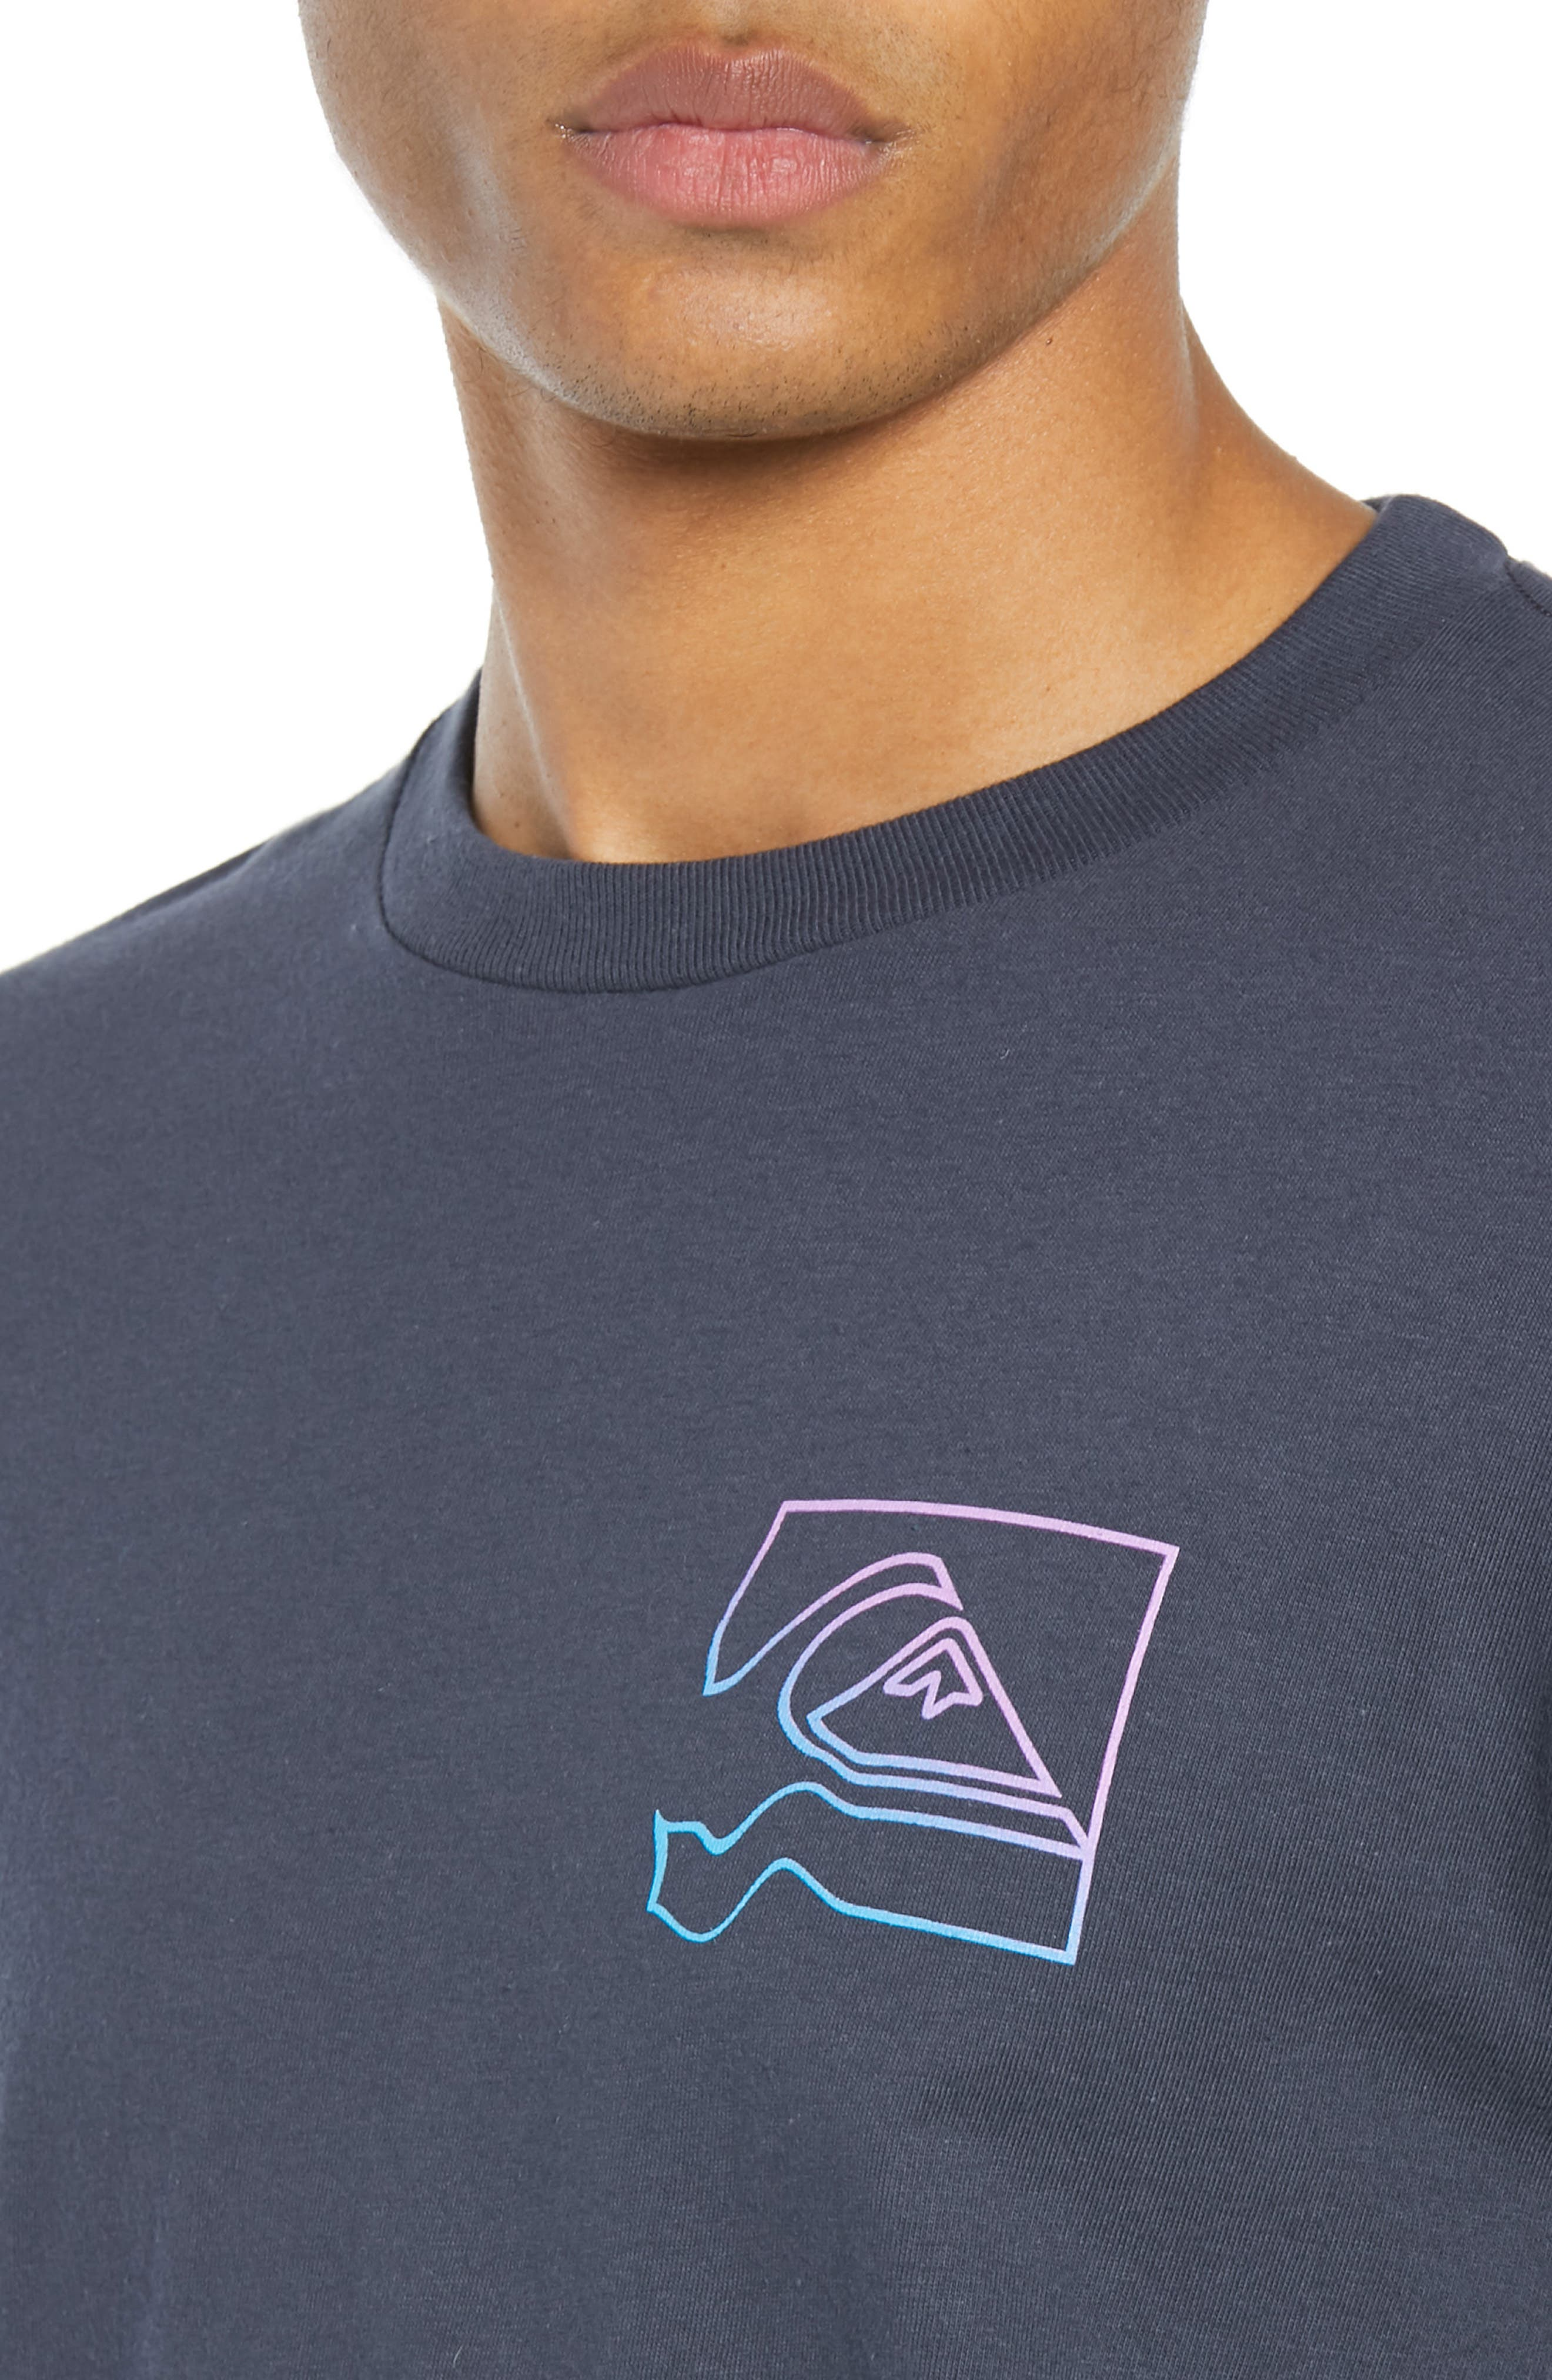 Distortion T-Shirt,                             Alternate thumbnail 4, color,                             BLUE NIGHTS